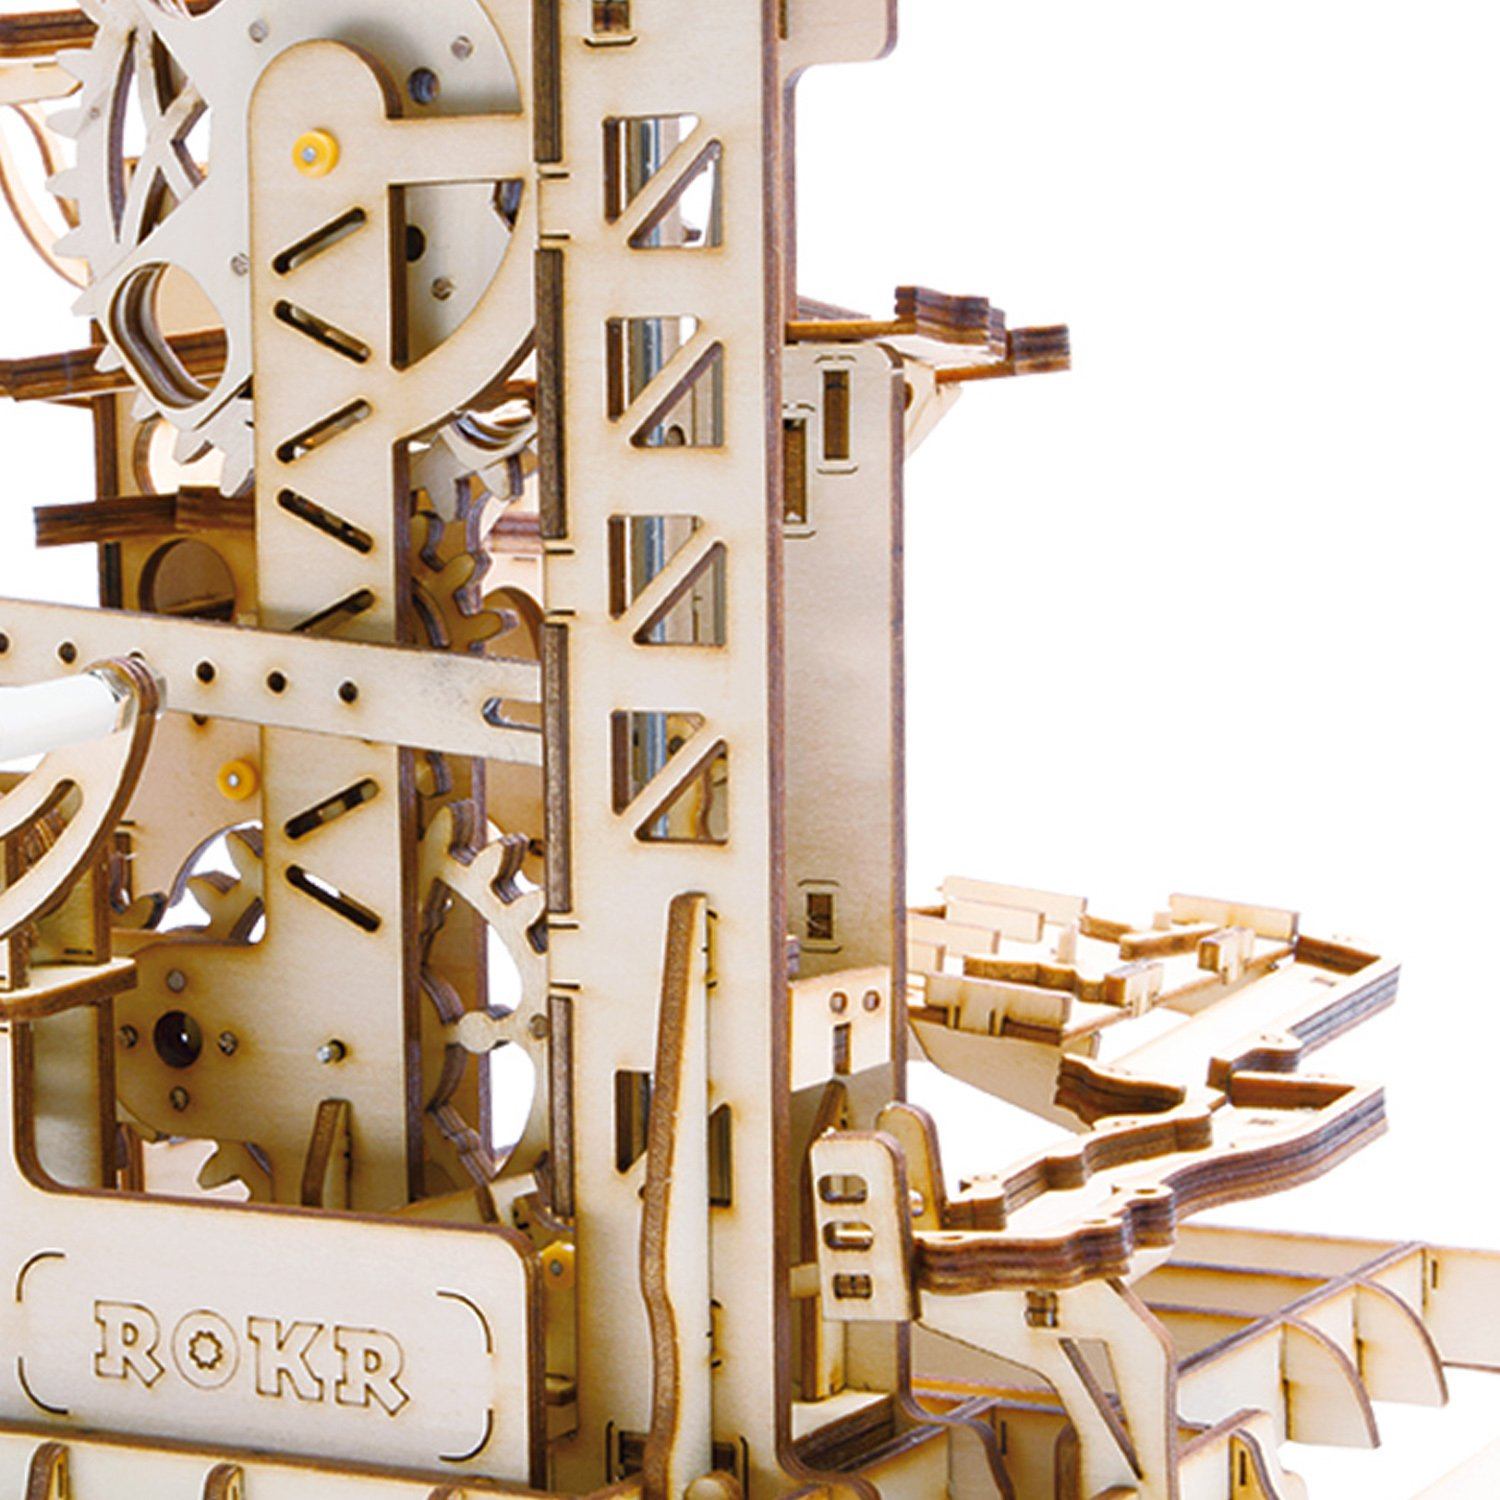 ROBOTIME 3D Wooden Puzzle Brain Teaser Toys Mechanical Gears Kit Unique Craft Kits Tower Coaster with Steel Balls Executive Desk Toys Best Gifts for Adults and Kids by ROBOTIME (Image #3)